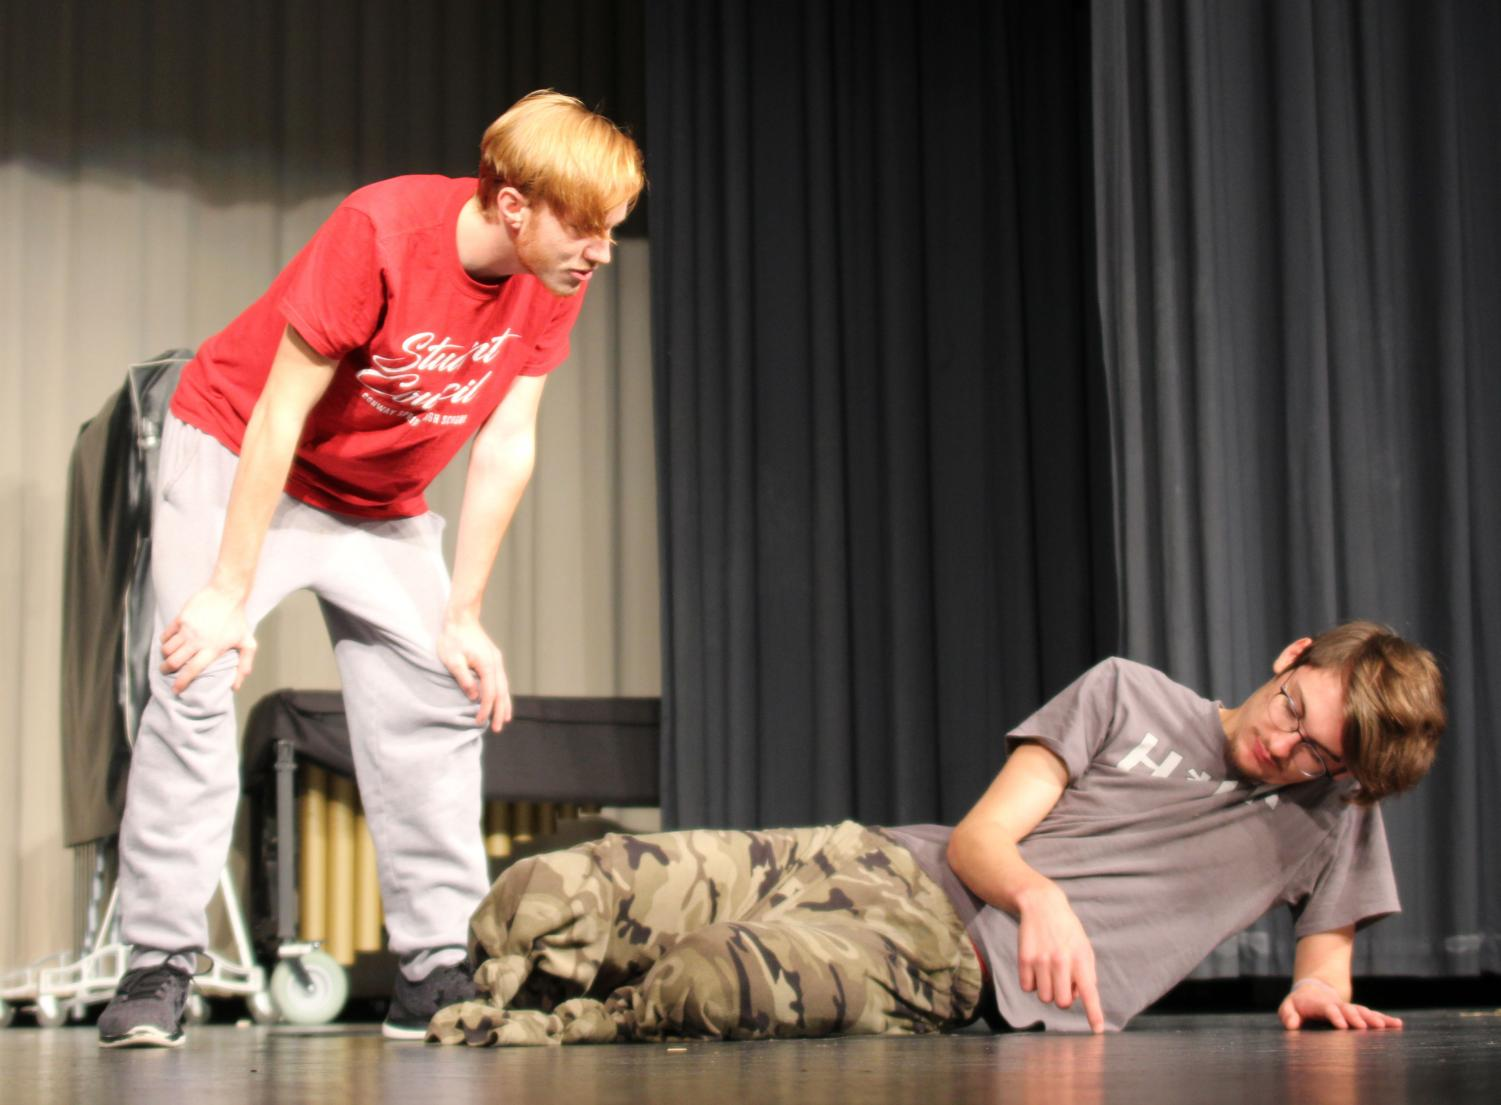 During play practice, Jimmy (senior Caden Runnalls) and Sam (senior Ben Doffing) have a discussion about whether or not to leave legless Doffing behind to sacrifice himself to the zombies so the others can escape.